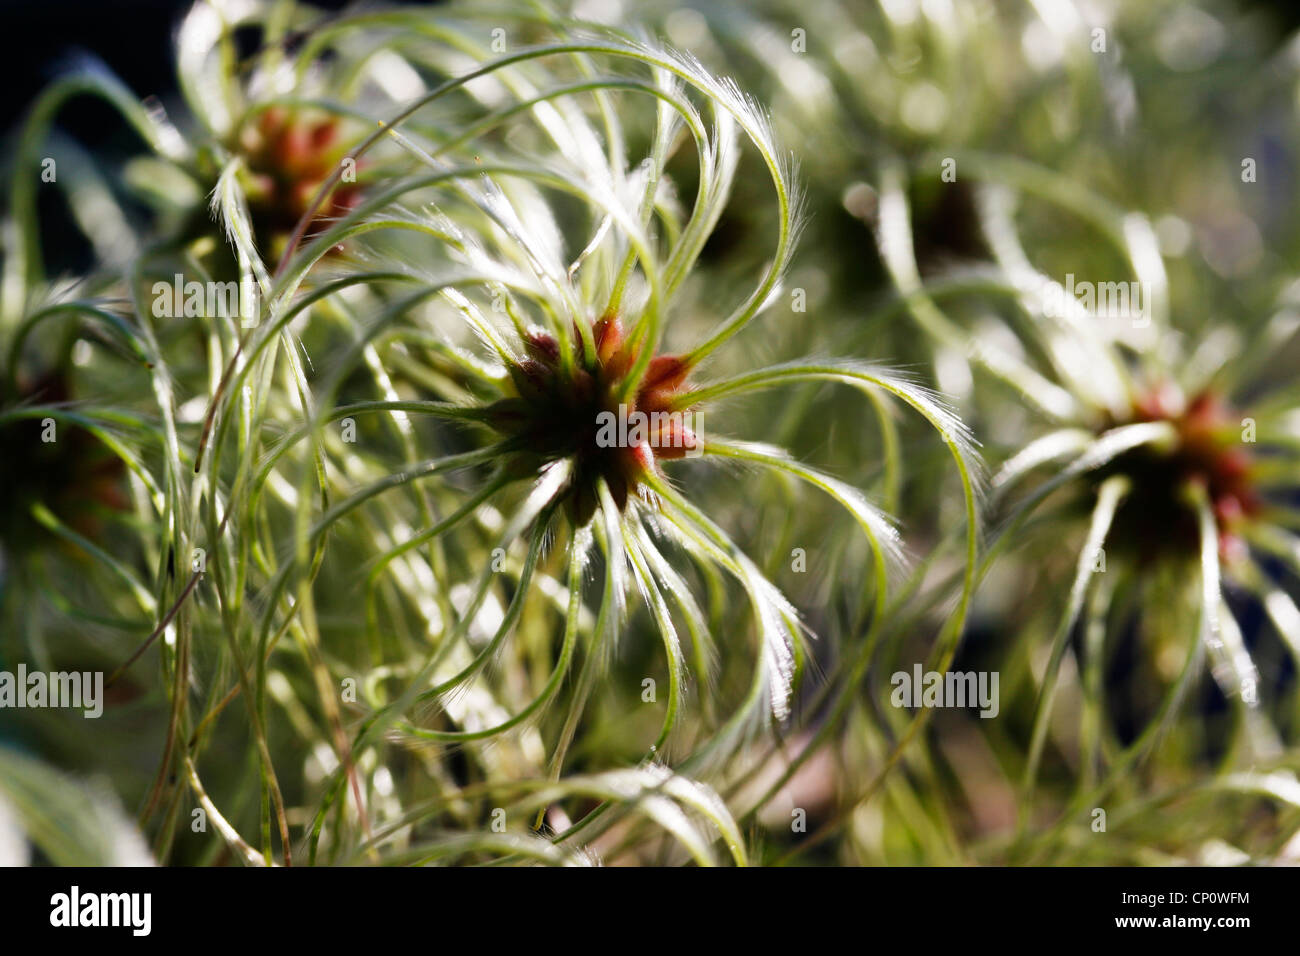 Seed head of Clematis species. - Stock Image